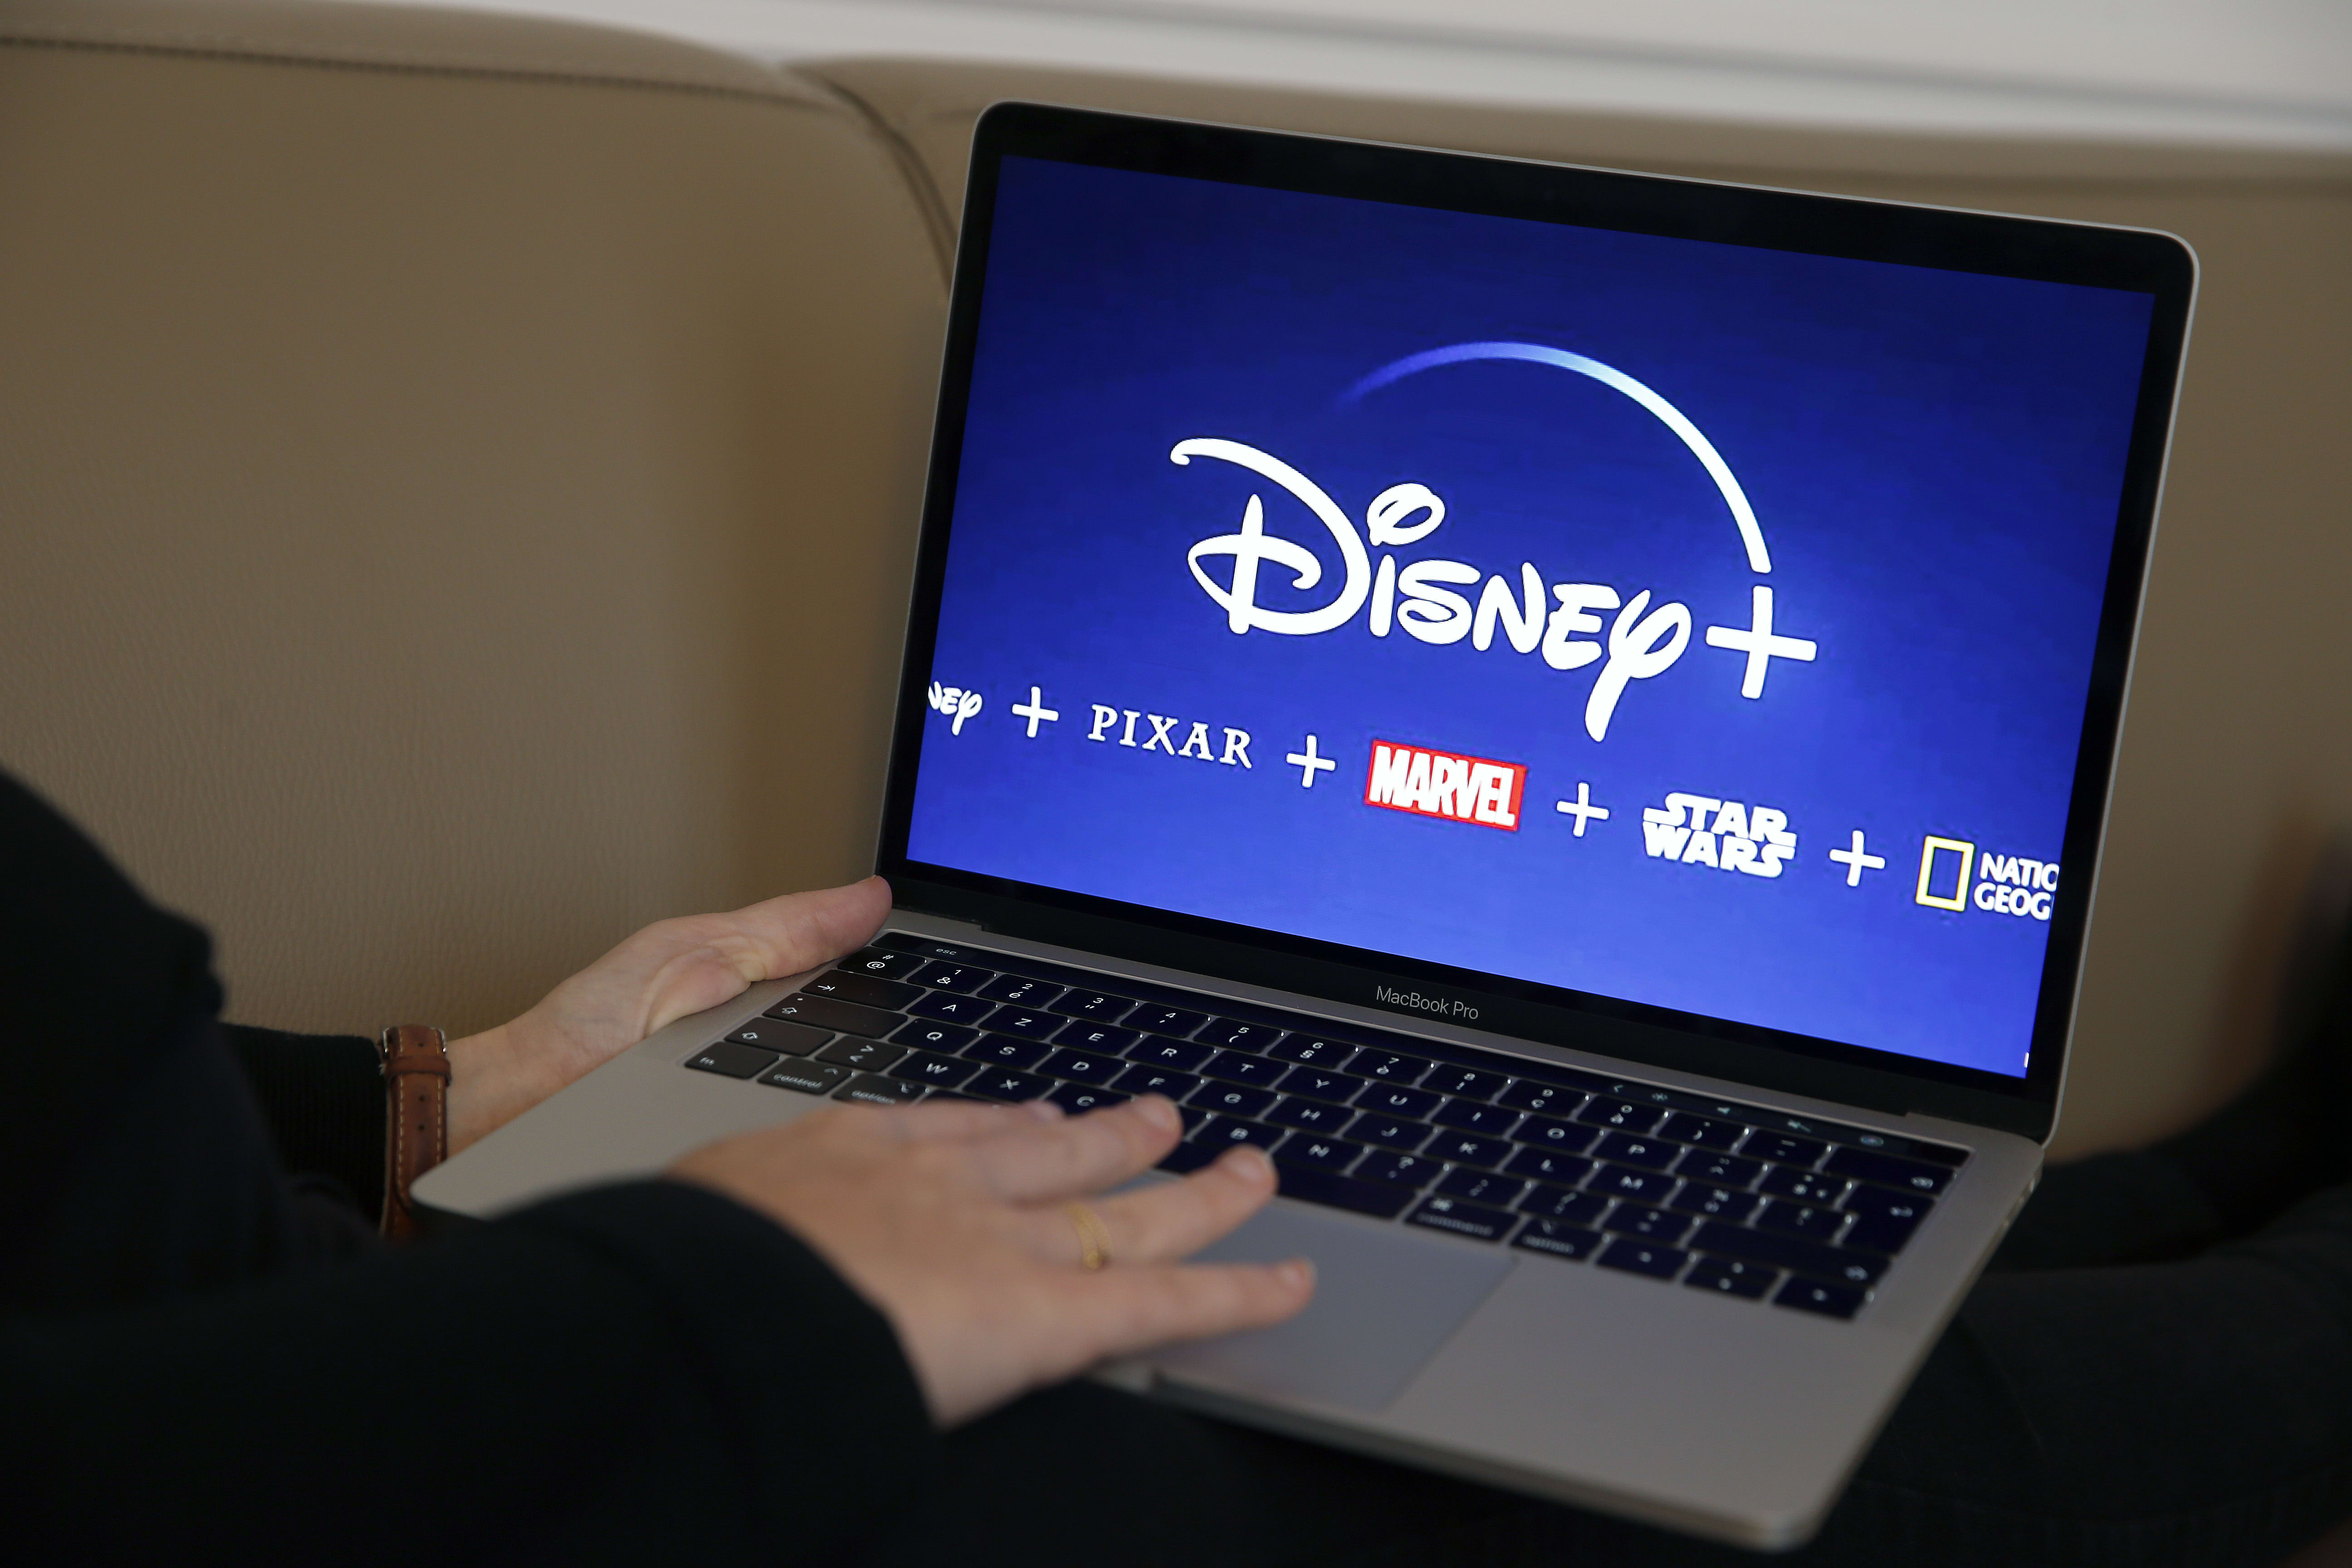 Hacked Disney+ accounts are reportedly being sold for as little as $3